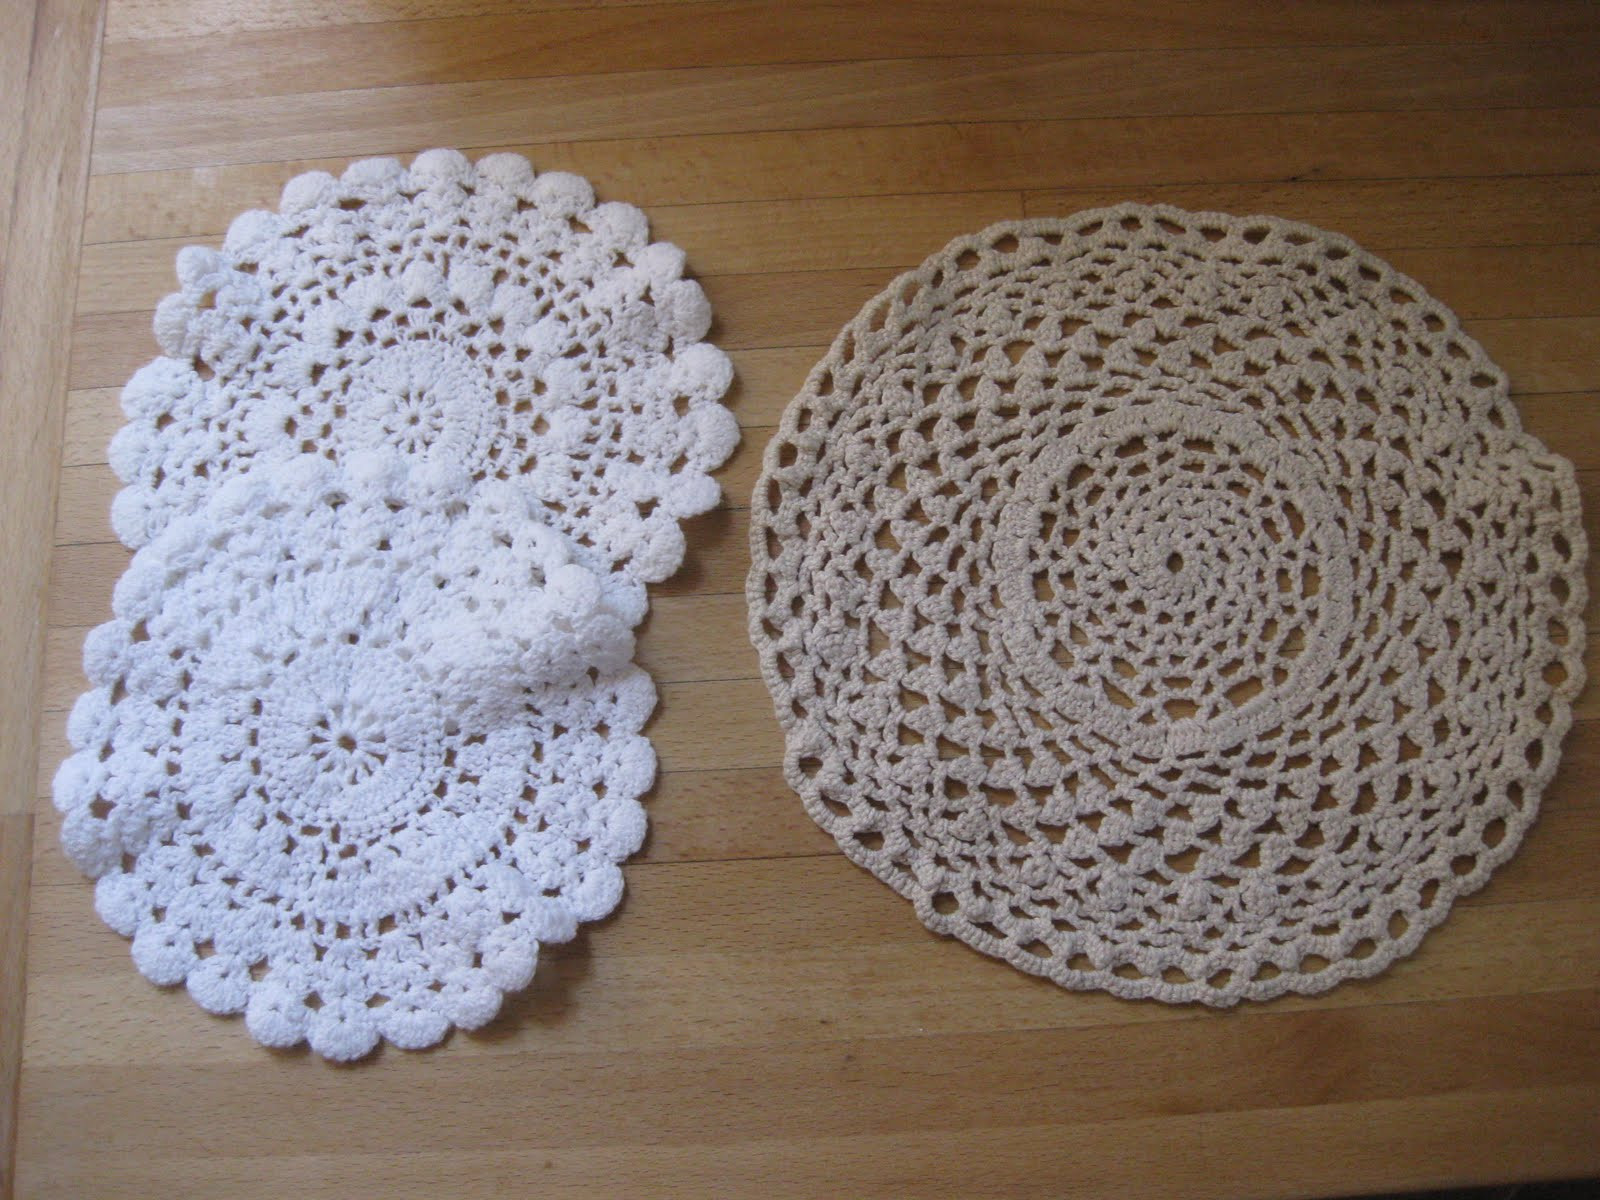 Cloth Lace Doilies Inspirational Me and My Shadow Lace Doilies Just Got Cool Of Top 48 Pics Cloth Lace Doilies